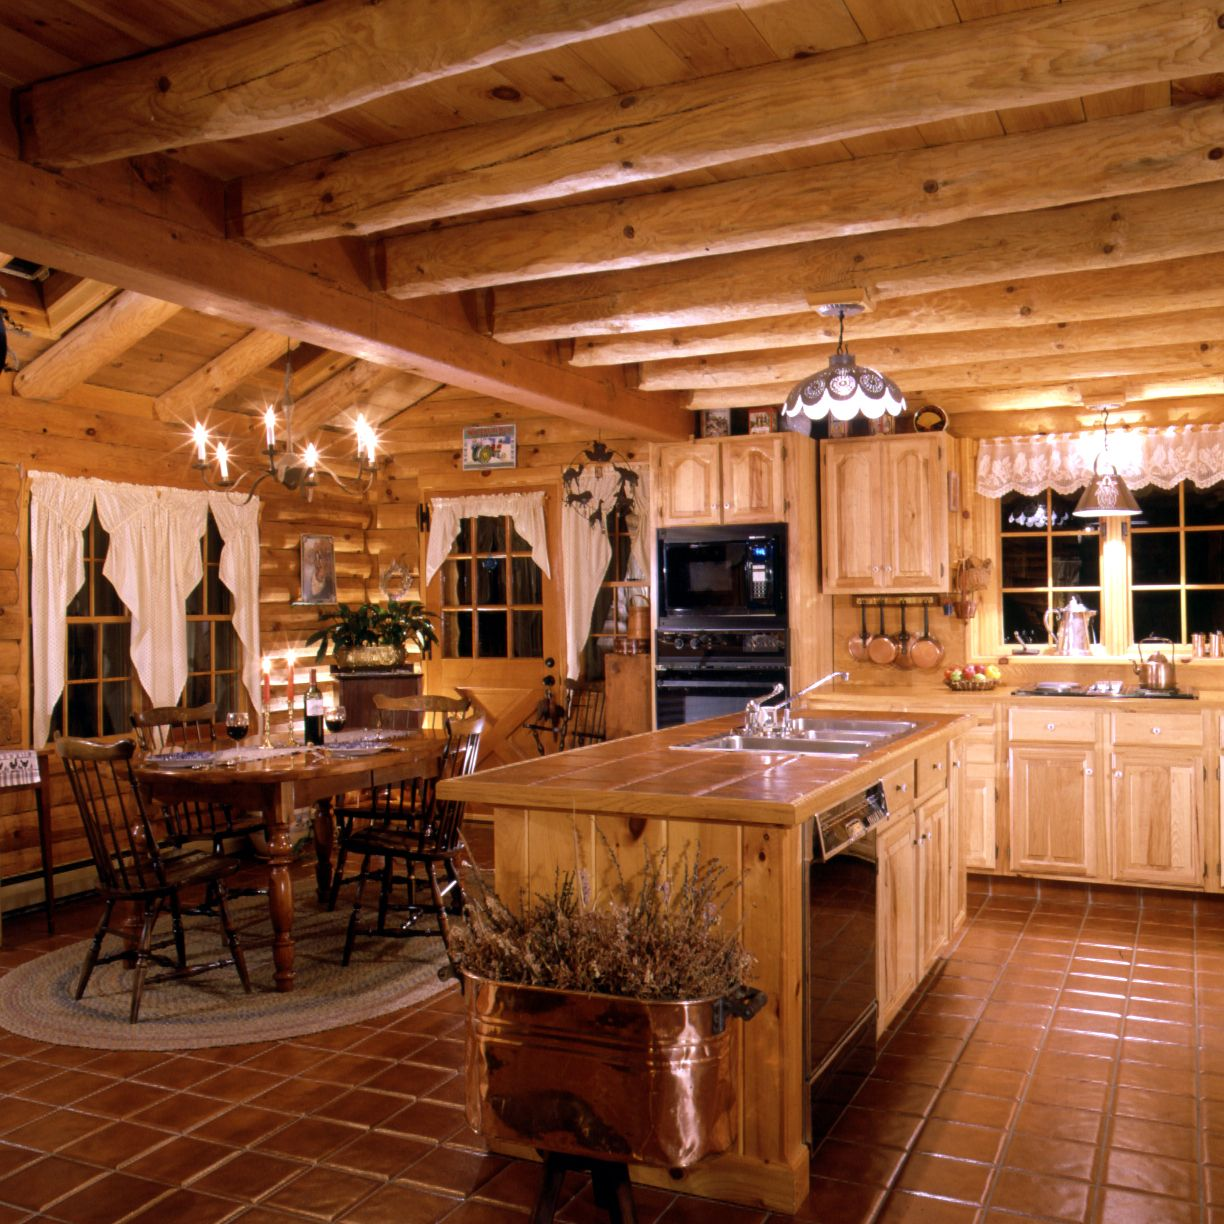 Log Home Kitchen ~ warmth of tiles for island counter and floors ...